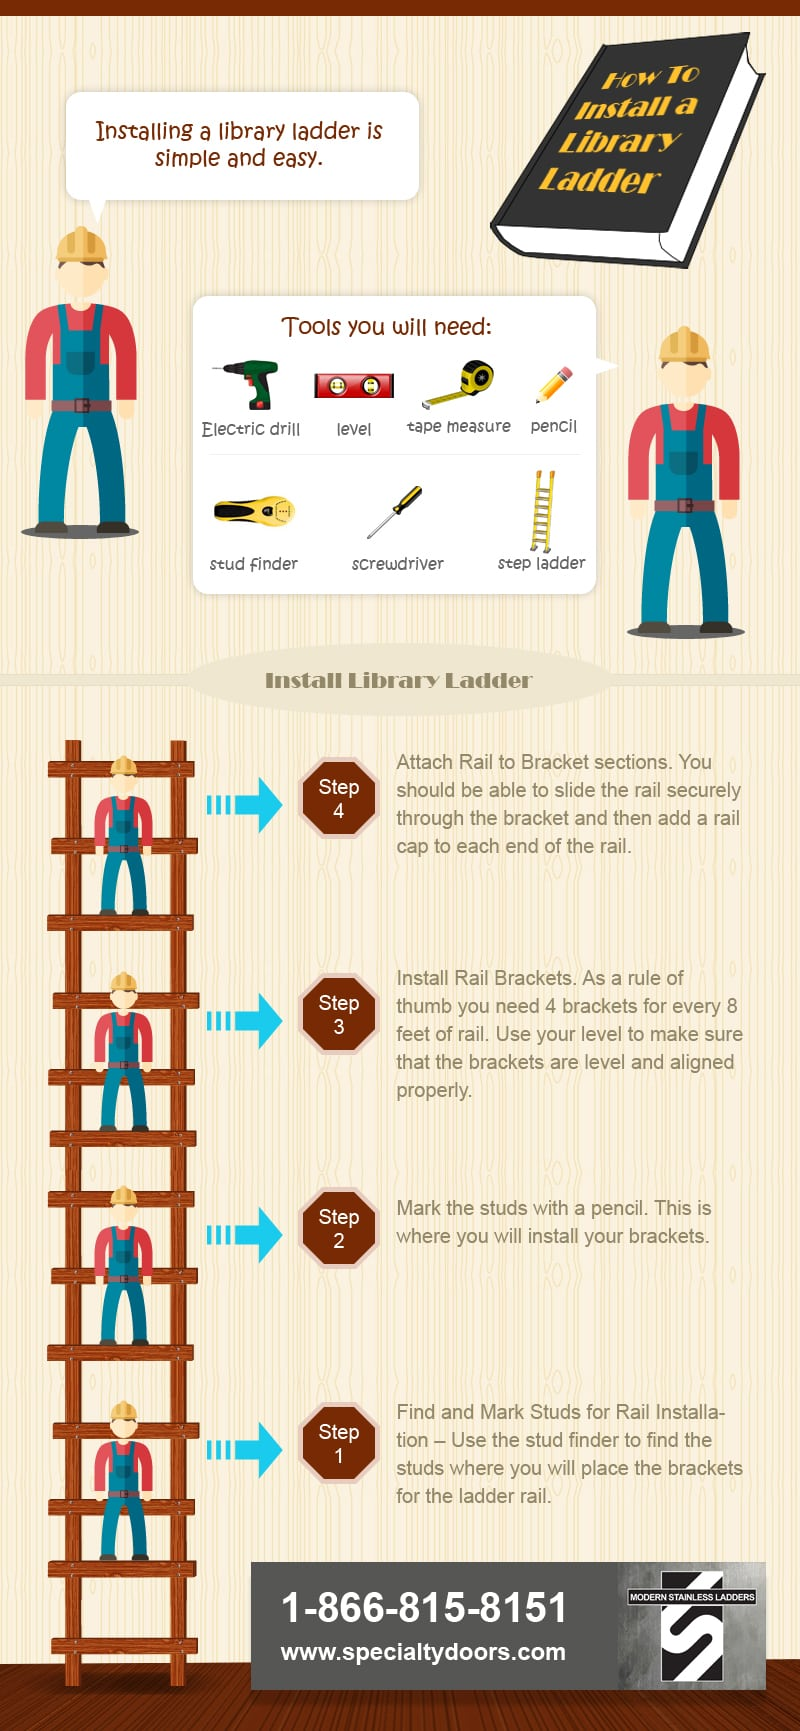 How to Install a library ladder